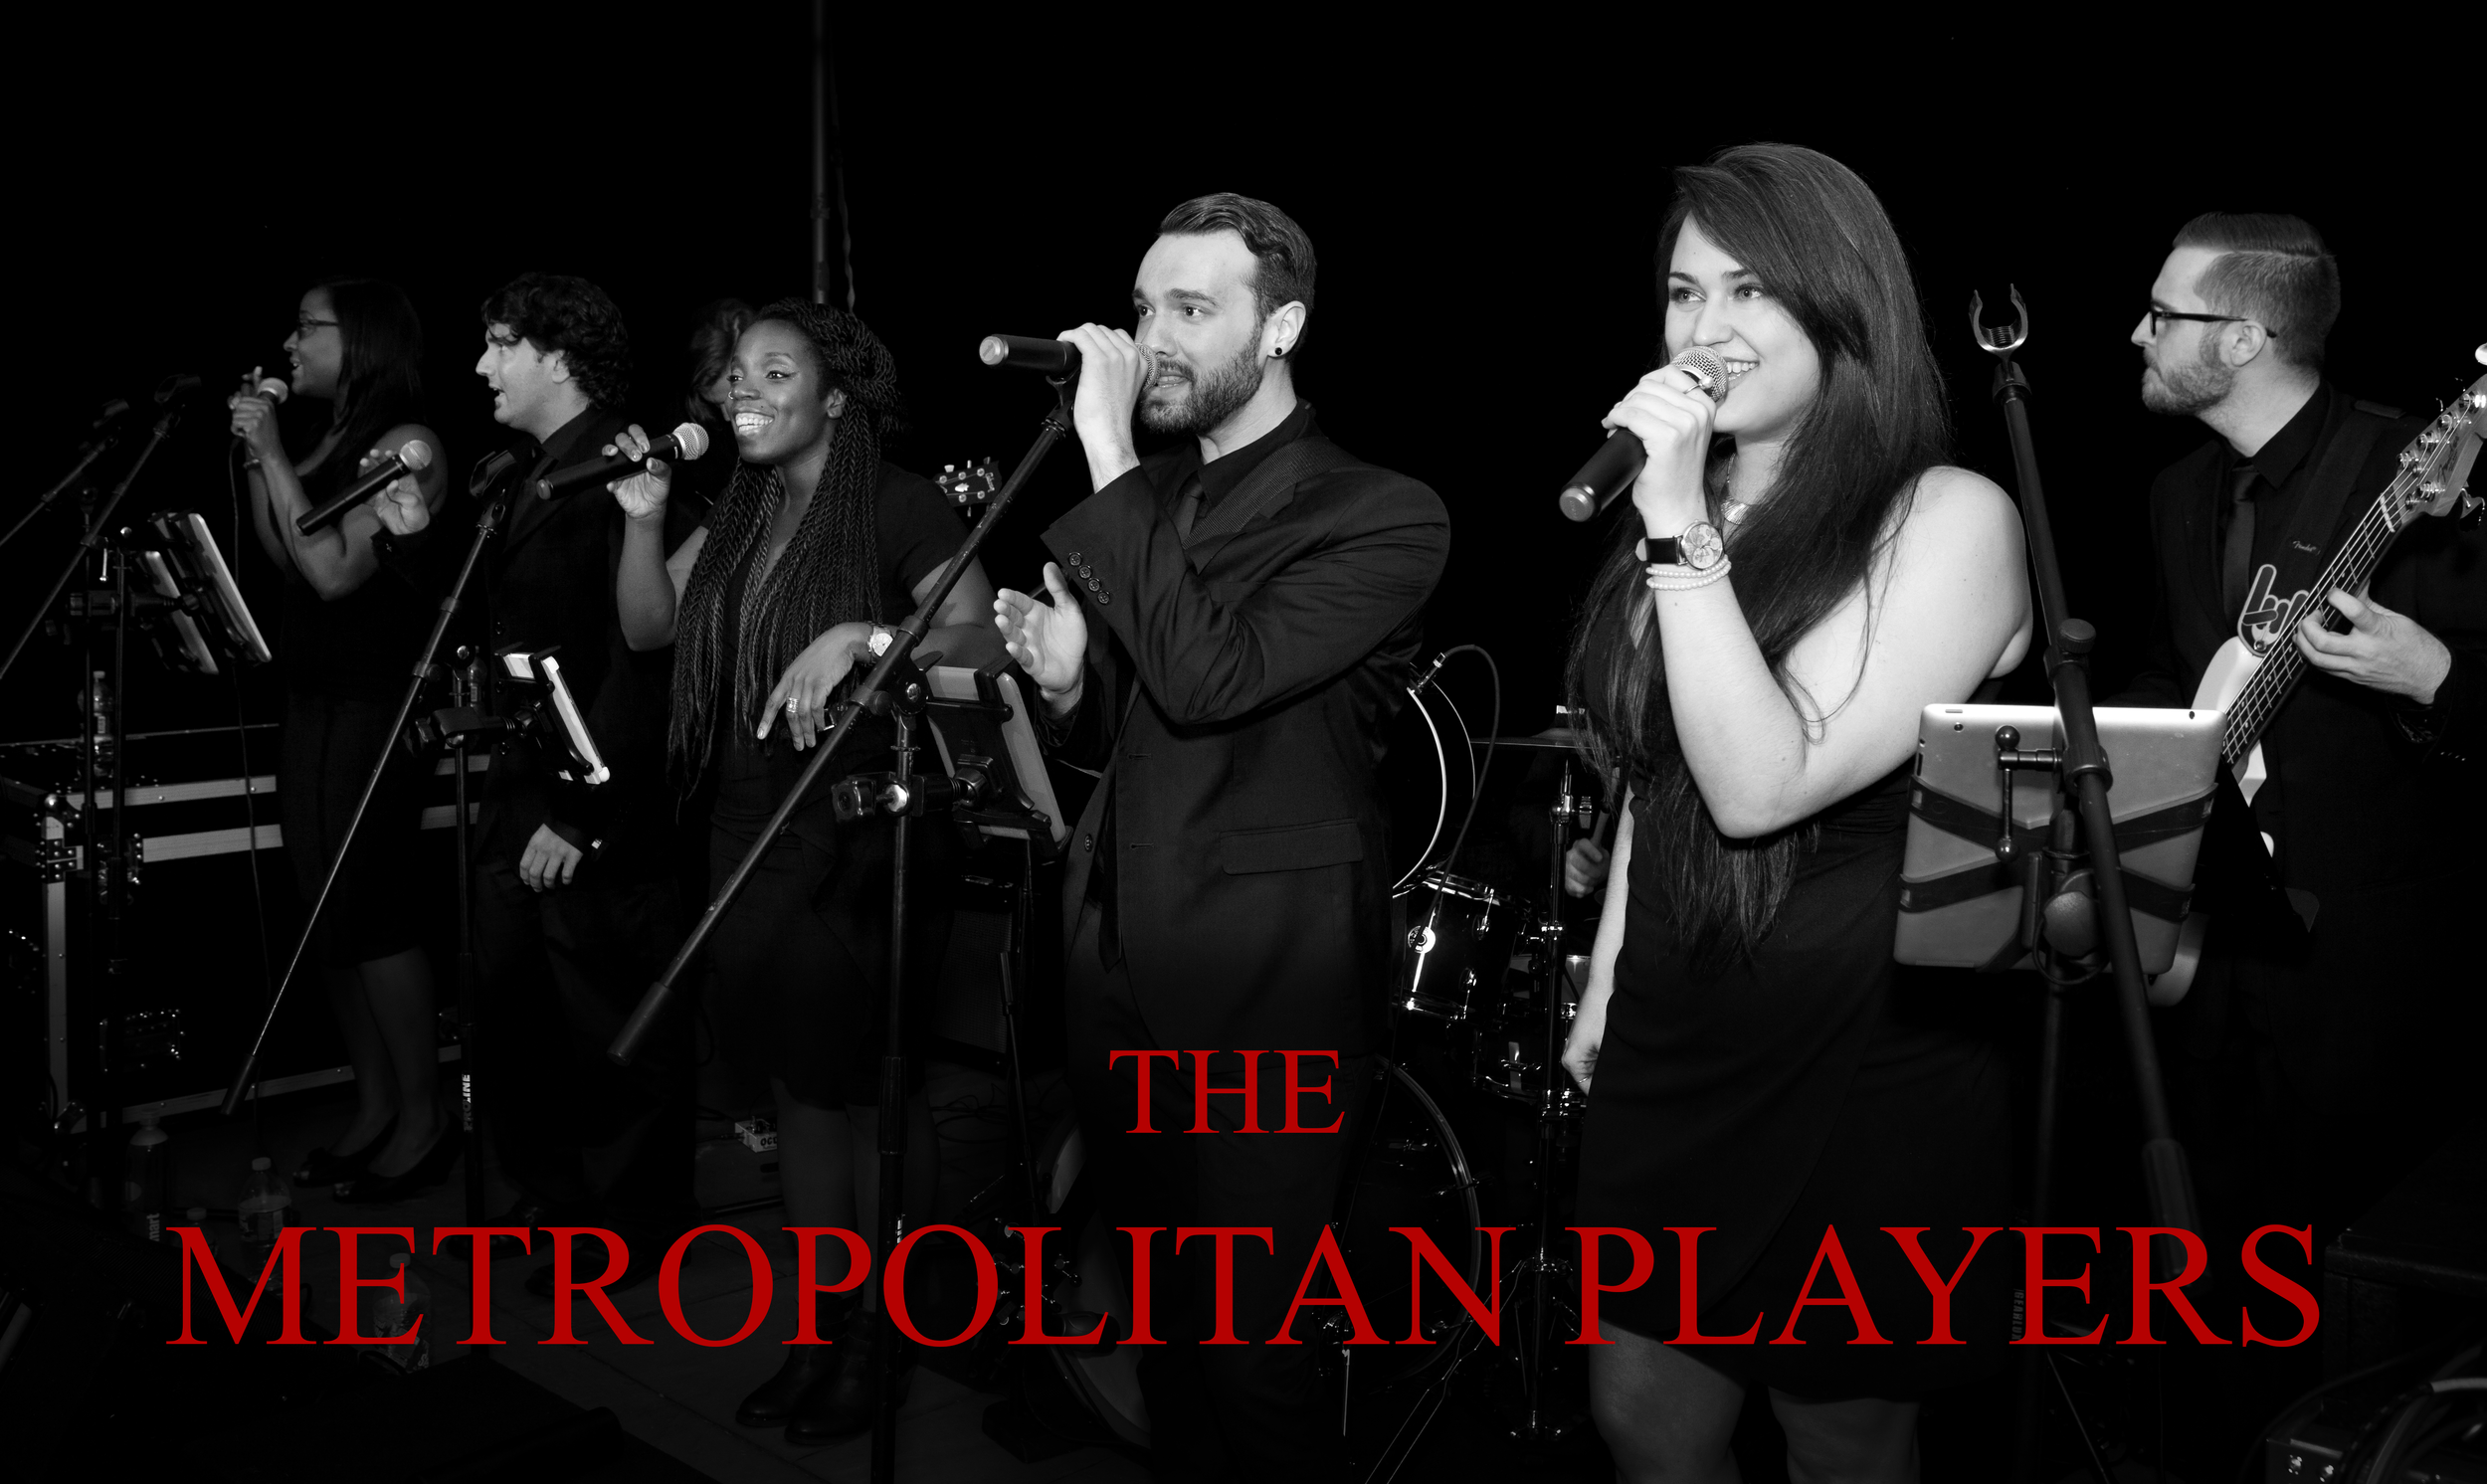 The Metropolitan Players